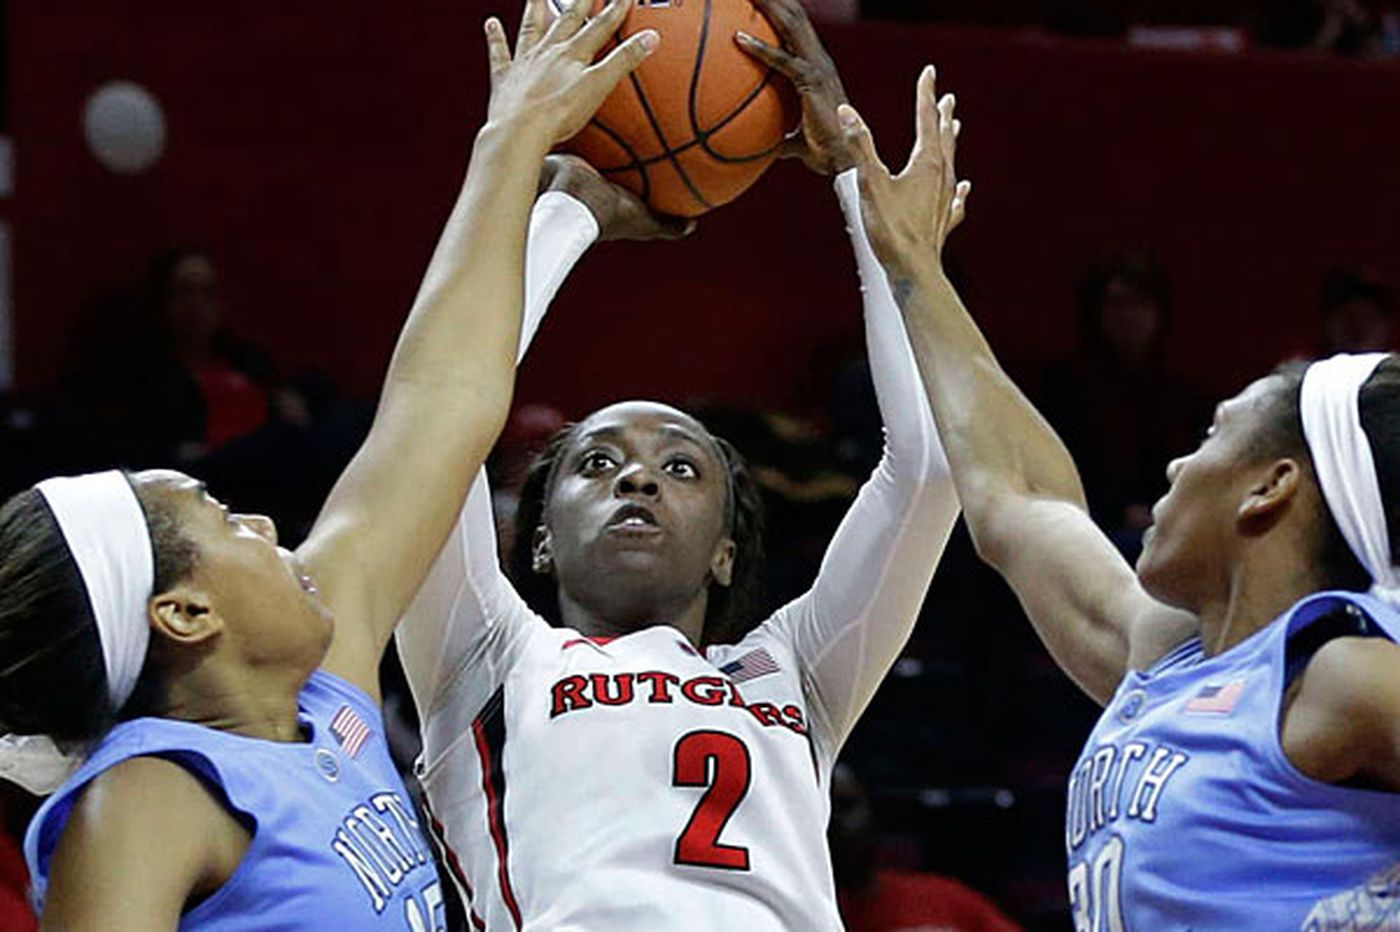 Prep Charter's Copper leads Rutgers in women's NCAA tourney